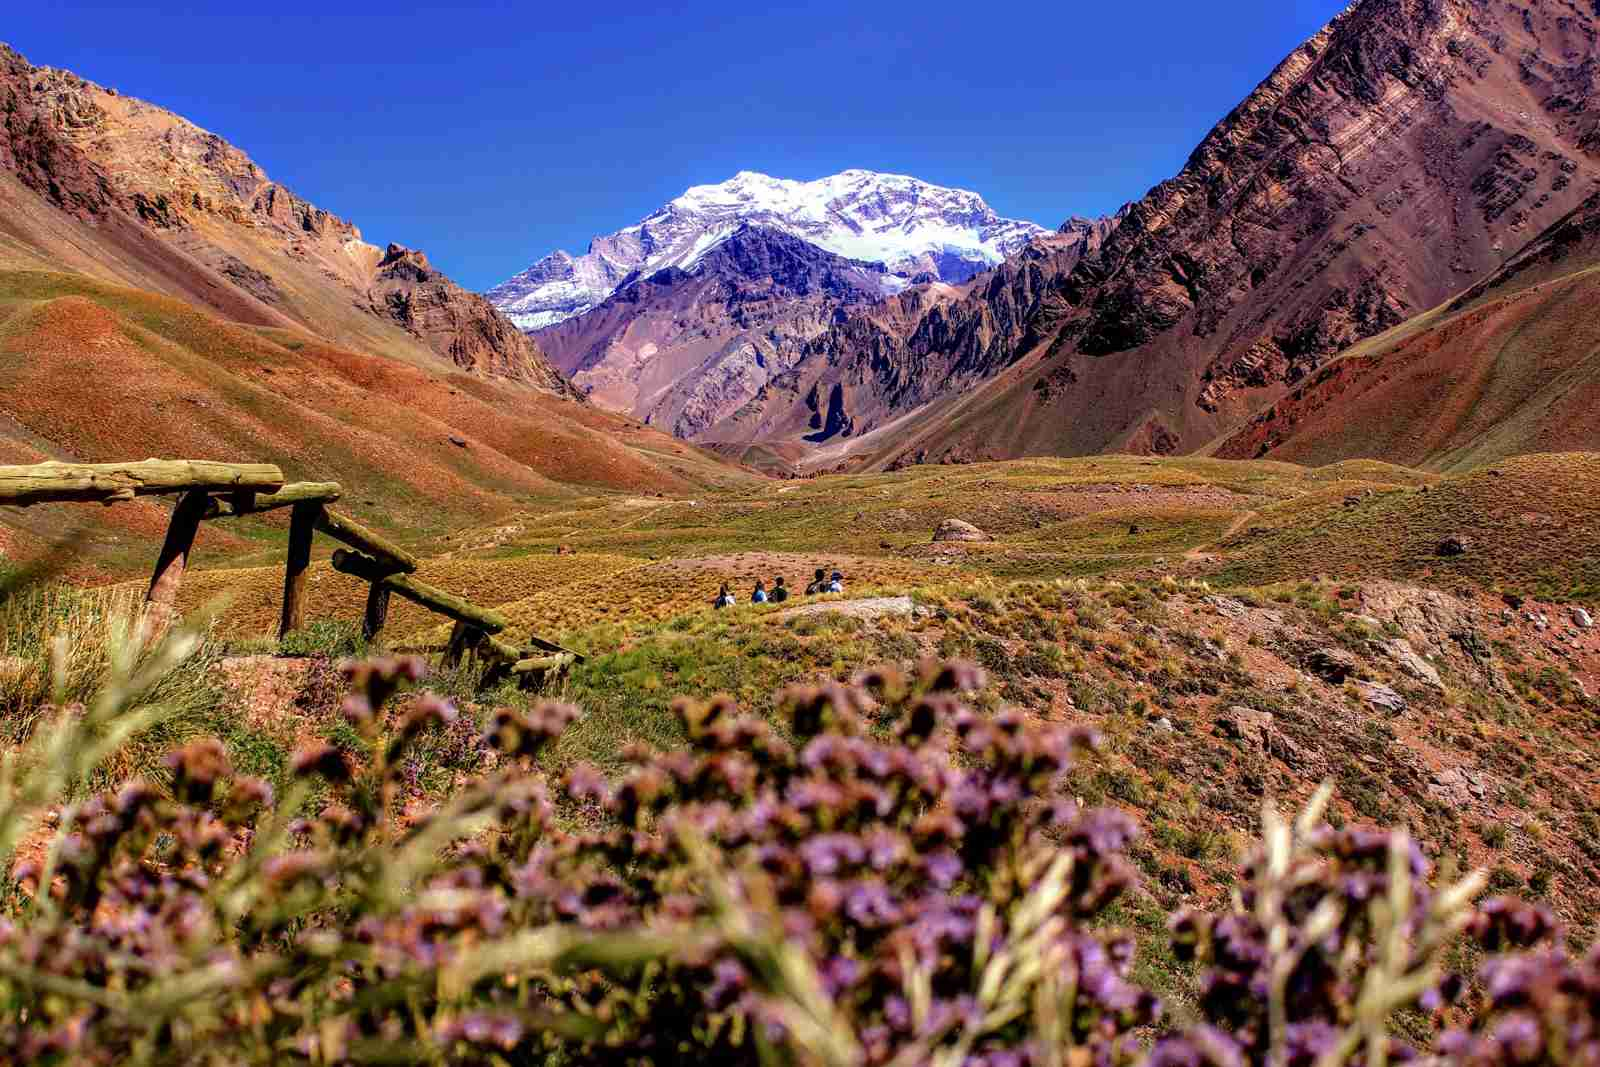 Aconcagua Park in Mendoza, Argentina. (Photo by Nicolas Perez/Unsplash)